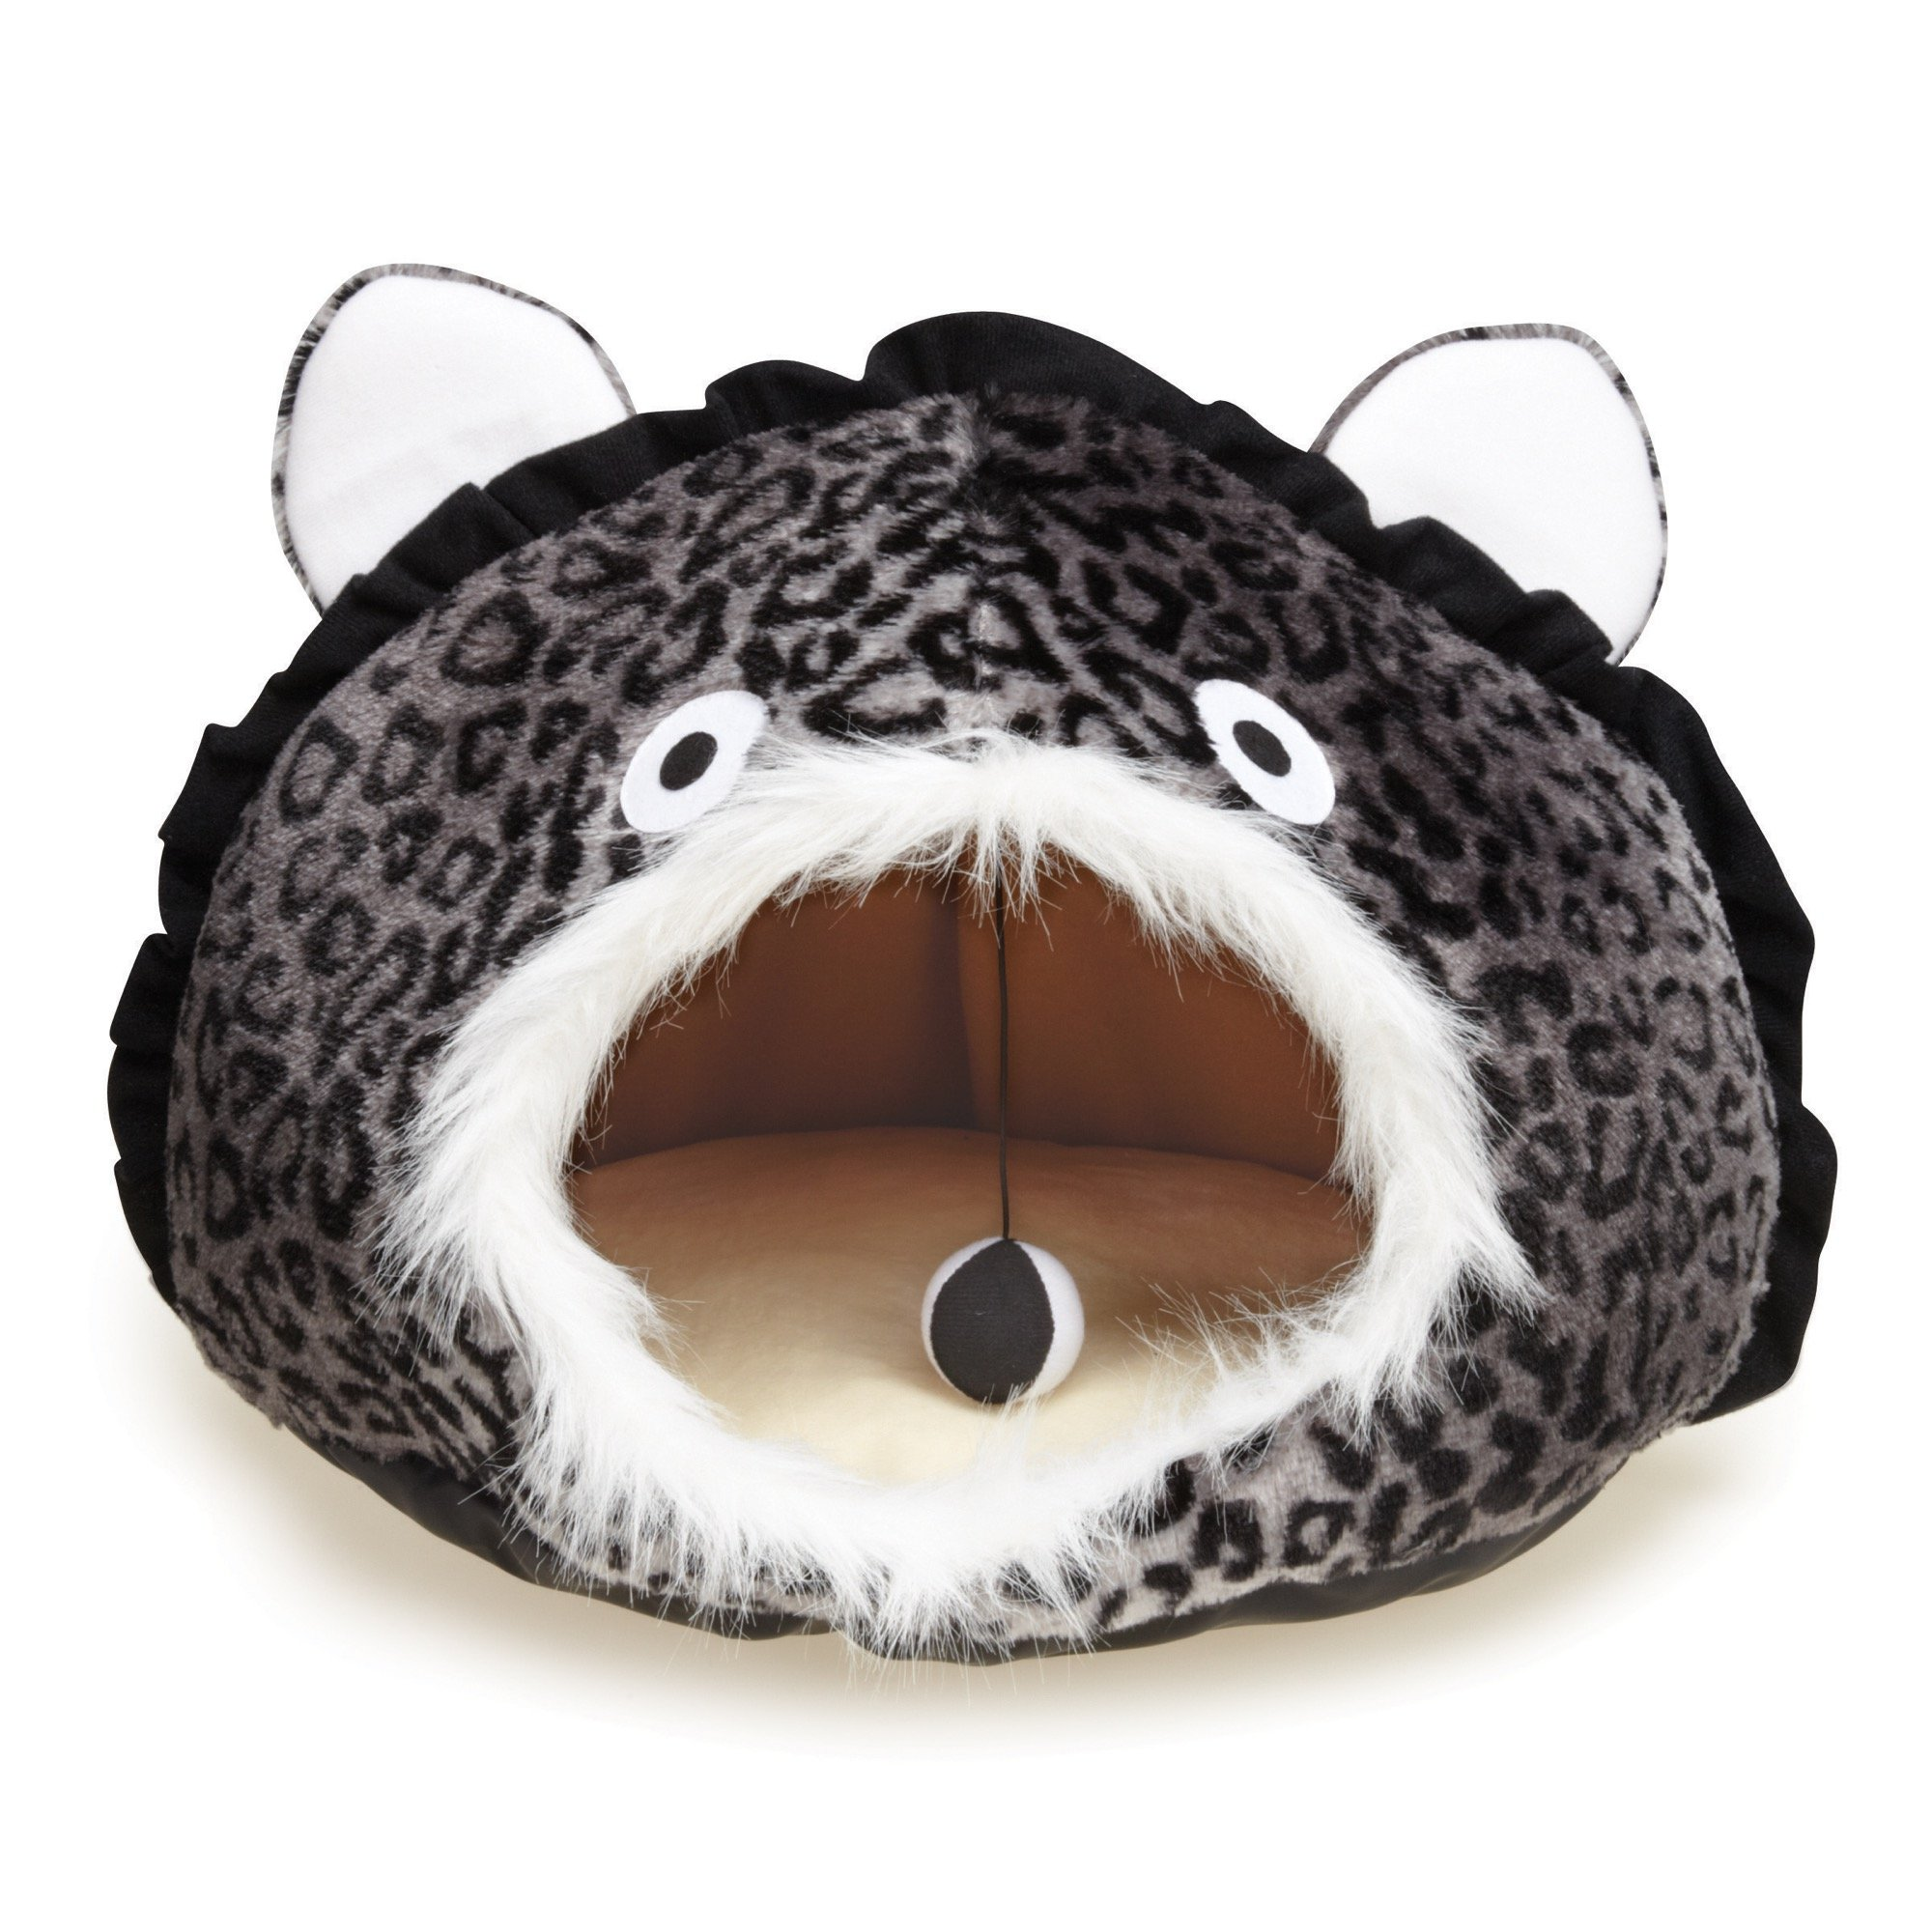 Meow Town Cat Caves Bed  -  Cozy and Comfortable Leopard-Print Hideaway Caves for Cats - 15''W x 11''H, Grey